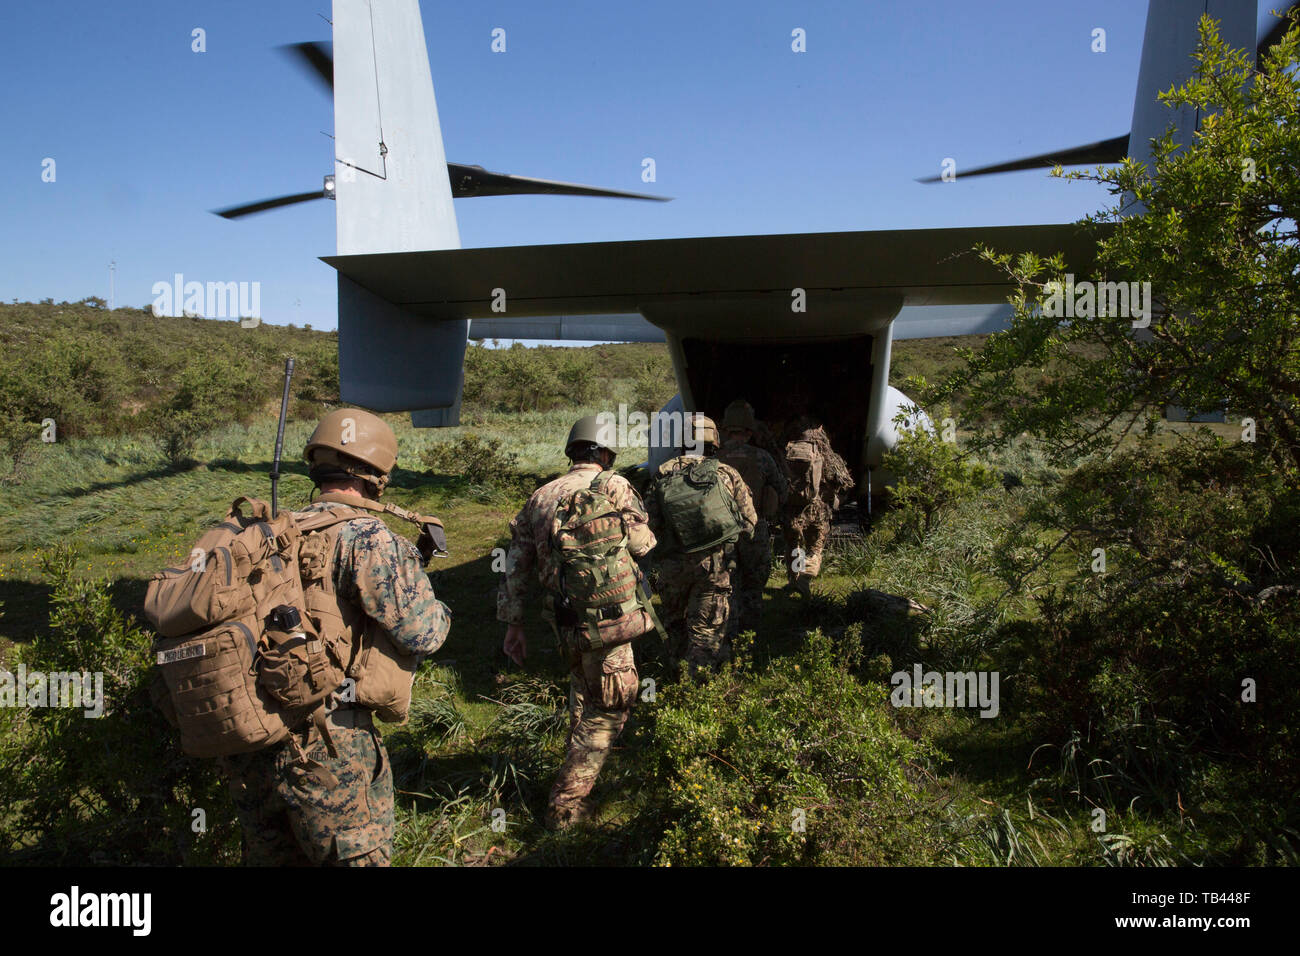 U.S. Marines with Special Purpose Marine Air-Ground Task Force-Crisis Response-Africa 19.2, Marine Forces Europe and Africa, and members of the Italian military board a U.S. Marine Corps MV-22B Osprey while conducting a raid rehearsal during exercise Joint Stars 2019 at Perdas range in Sardinia, Italy, May 24, 2019. Joint Stars 2019 is a bilateral training exercise between the Italian Armed Forces and U.S. Marines. SPMAGTF-CR-AF is deployed to conduct crisis-response and theater-security operations in Africa and promote regional stability by conducting military-to-military training exercises t Stock Photo